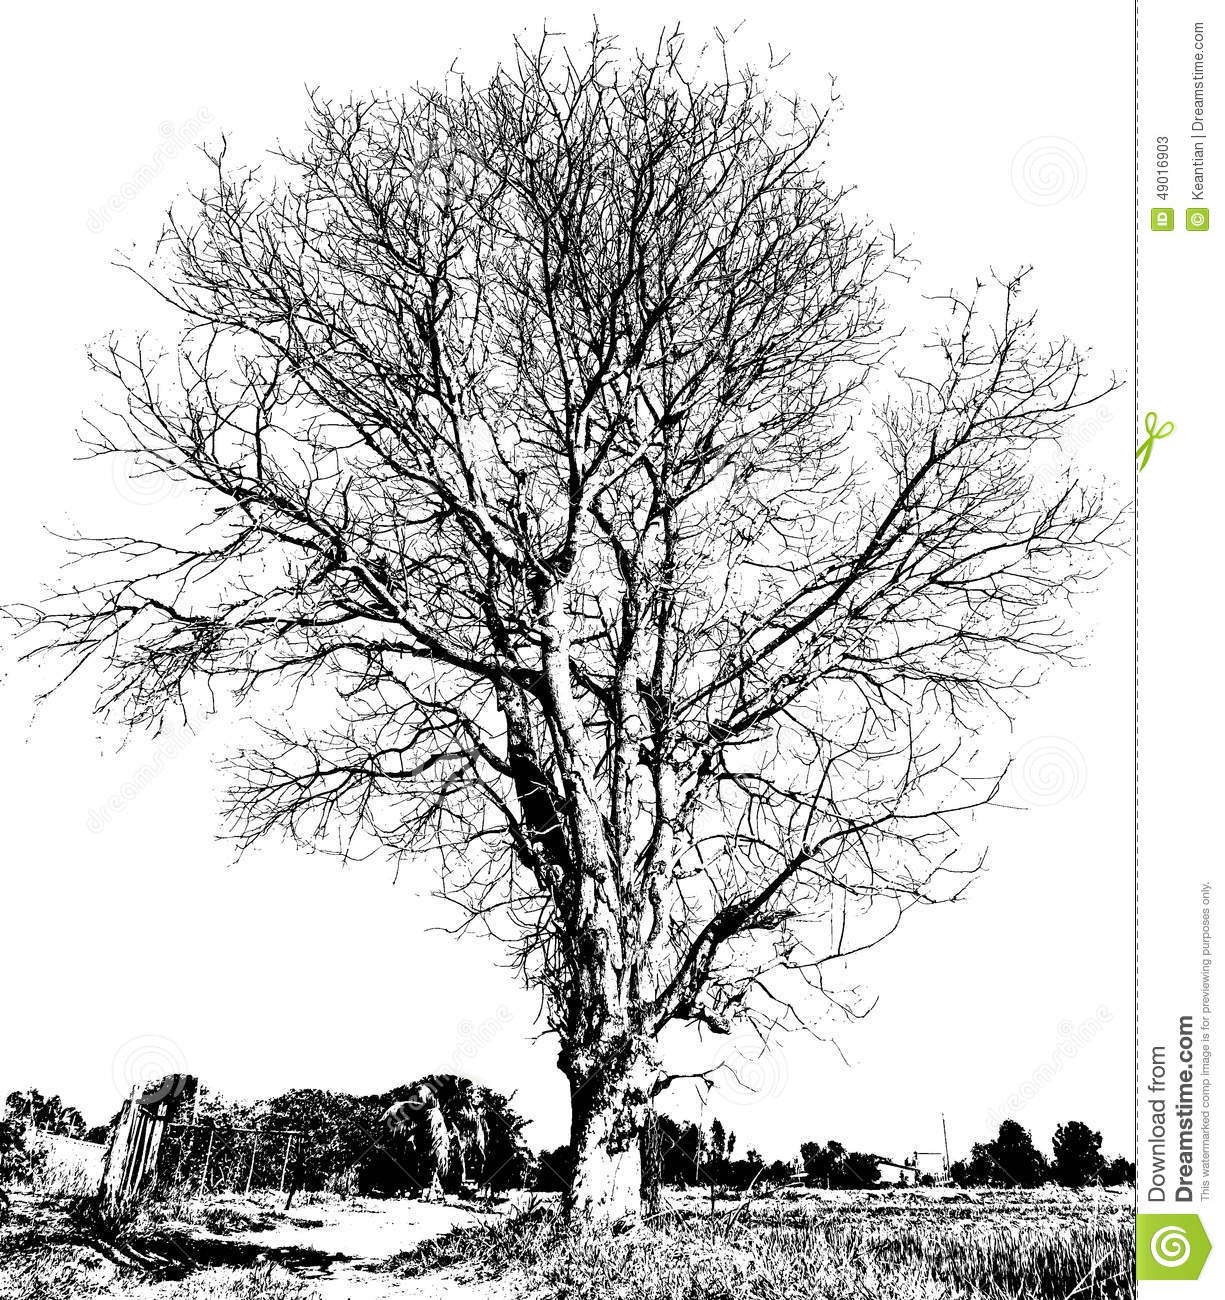 Black And White Dry Tree Stock Image. Image Of Outdoor